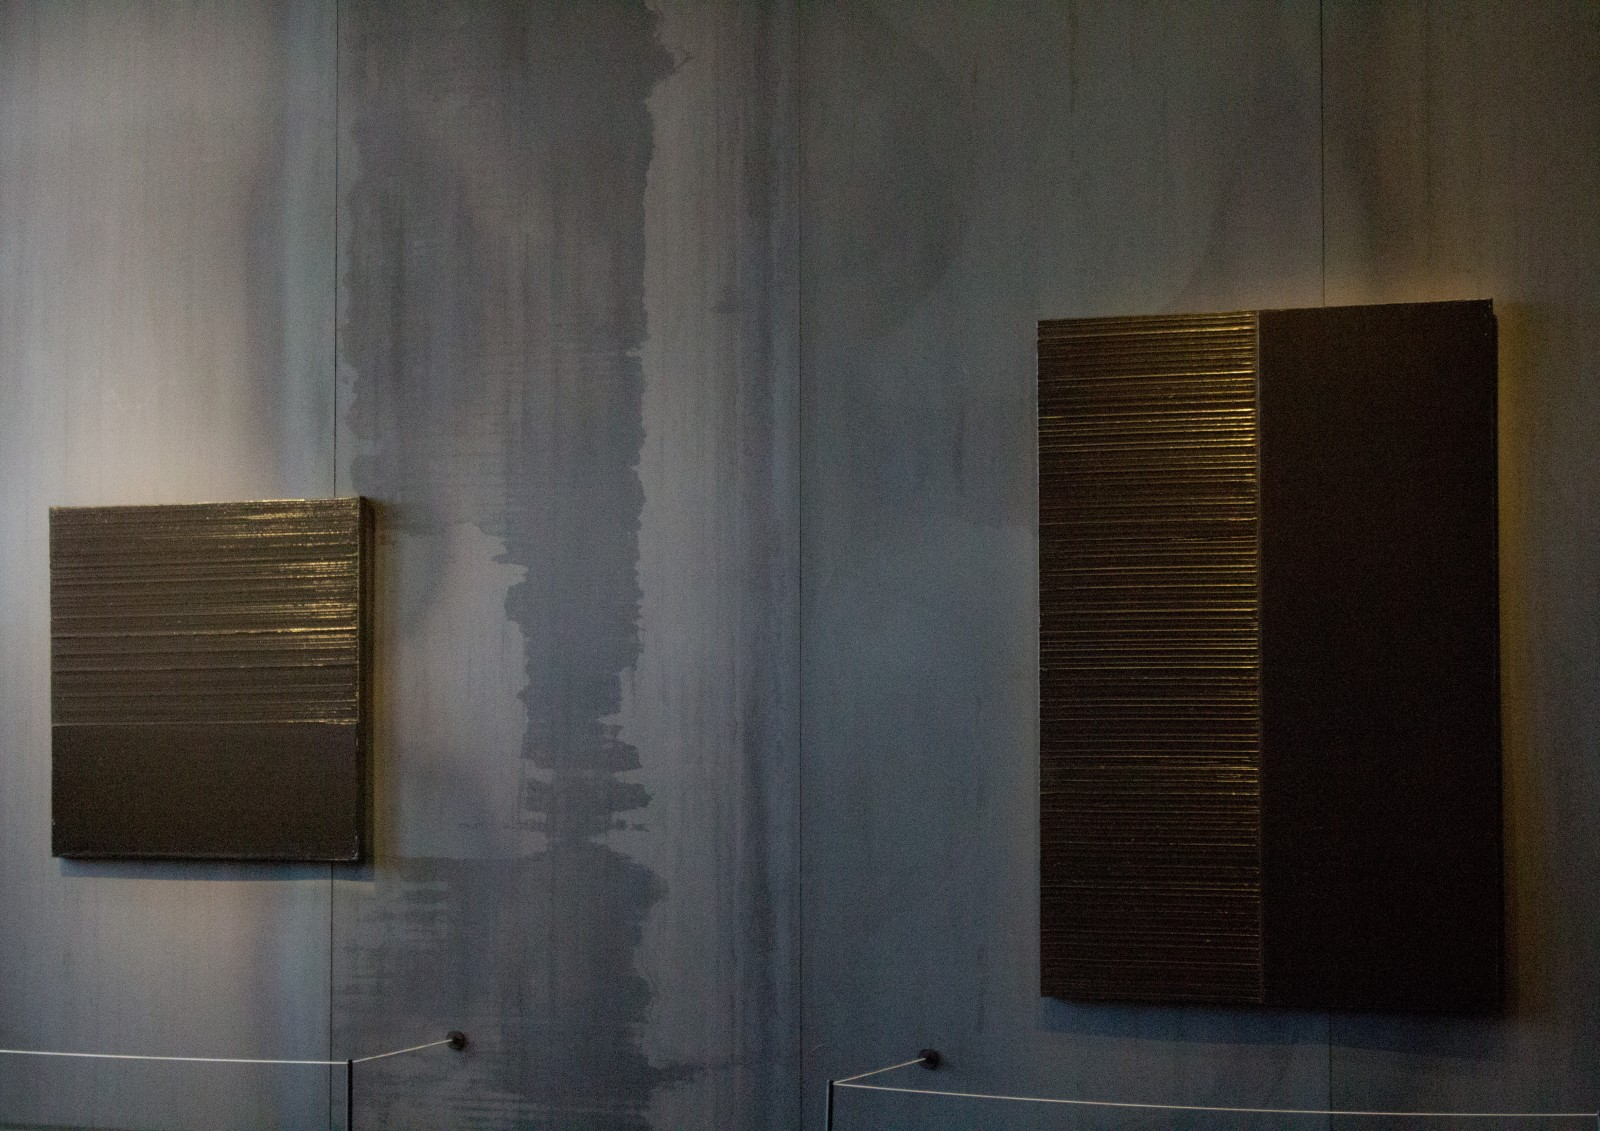 rodez-soulages-musee